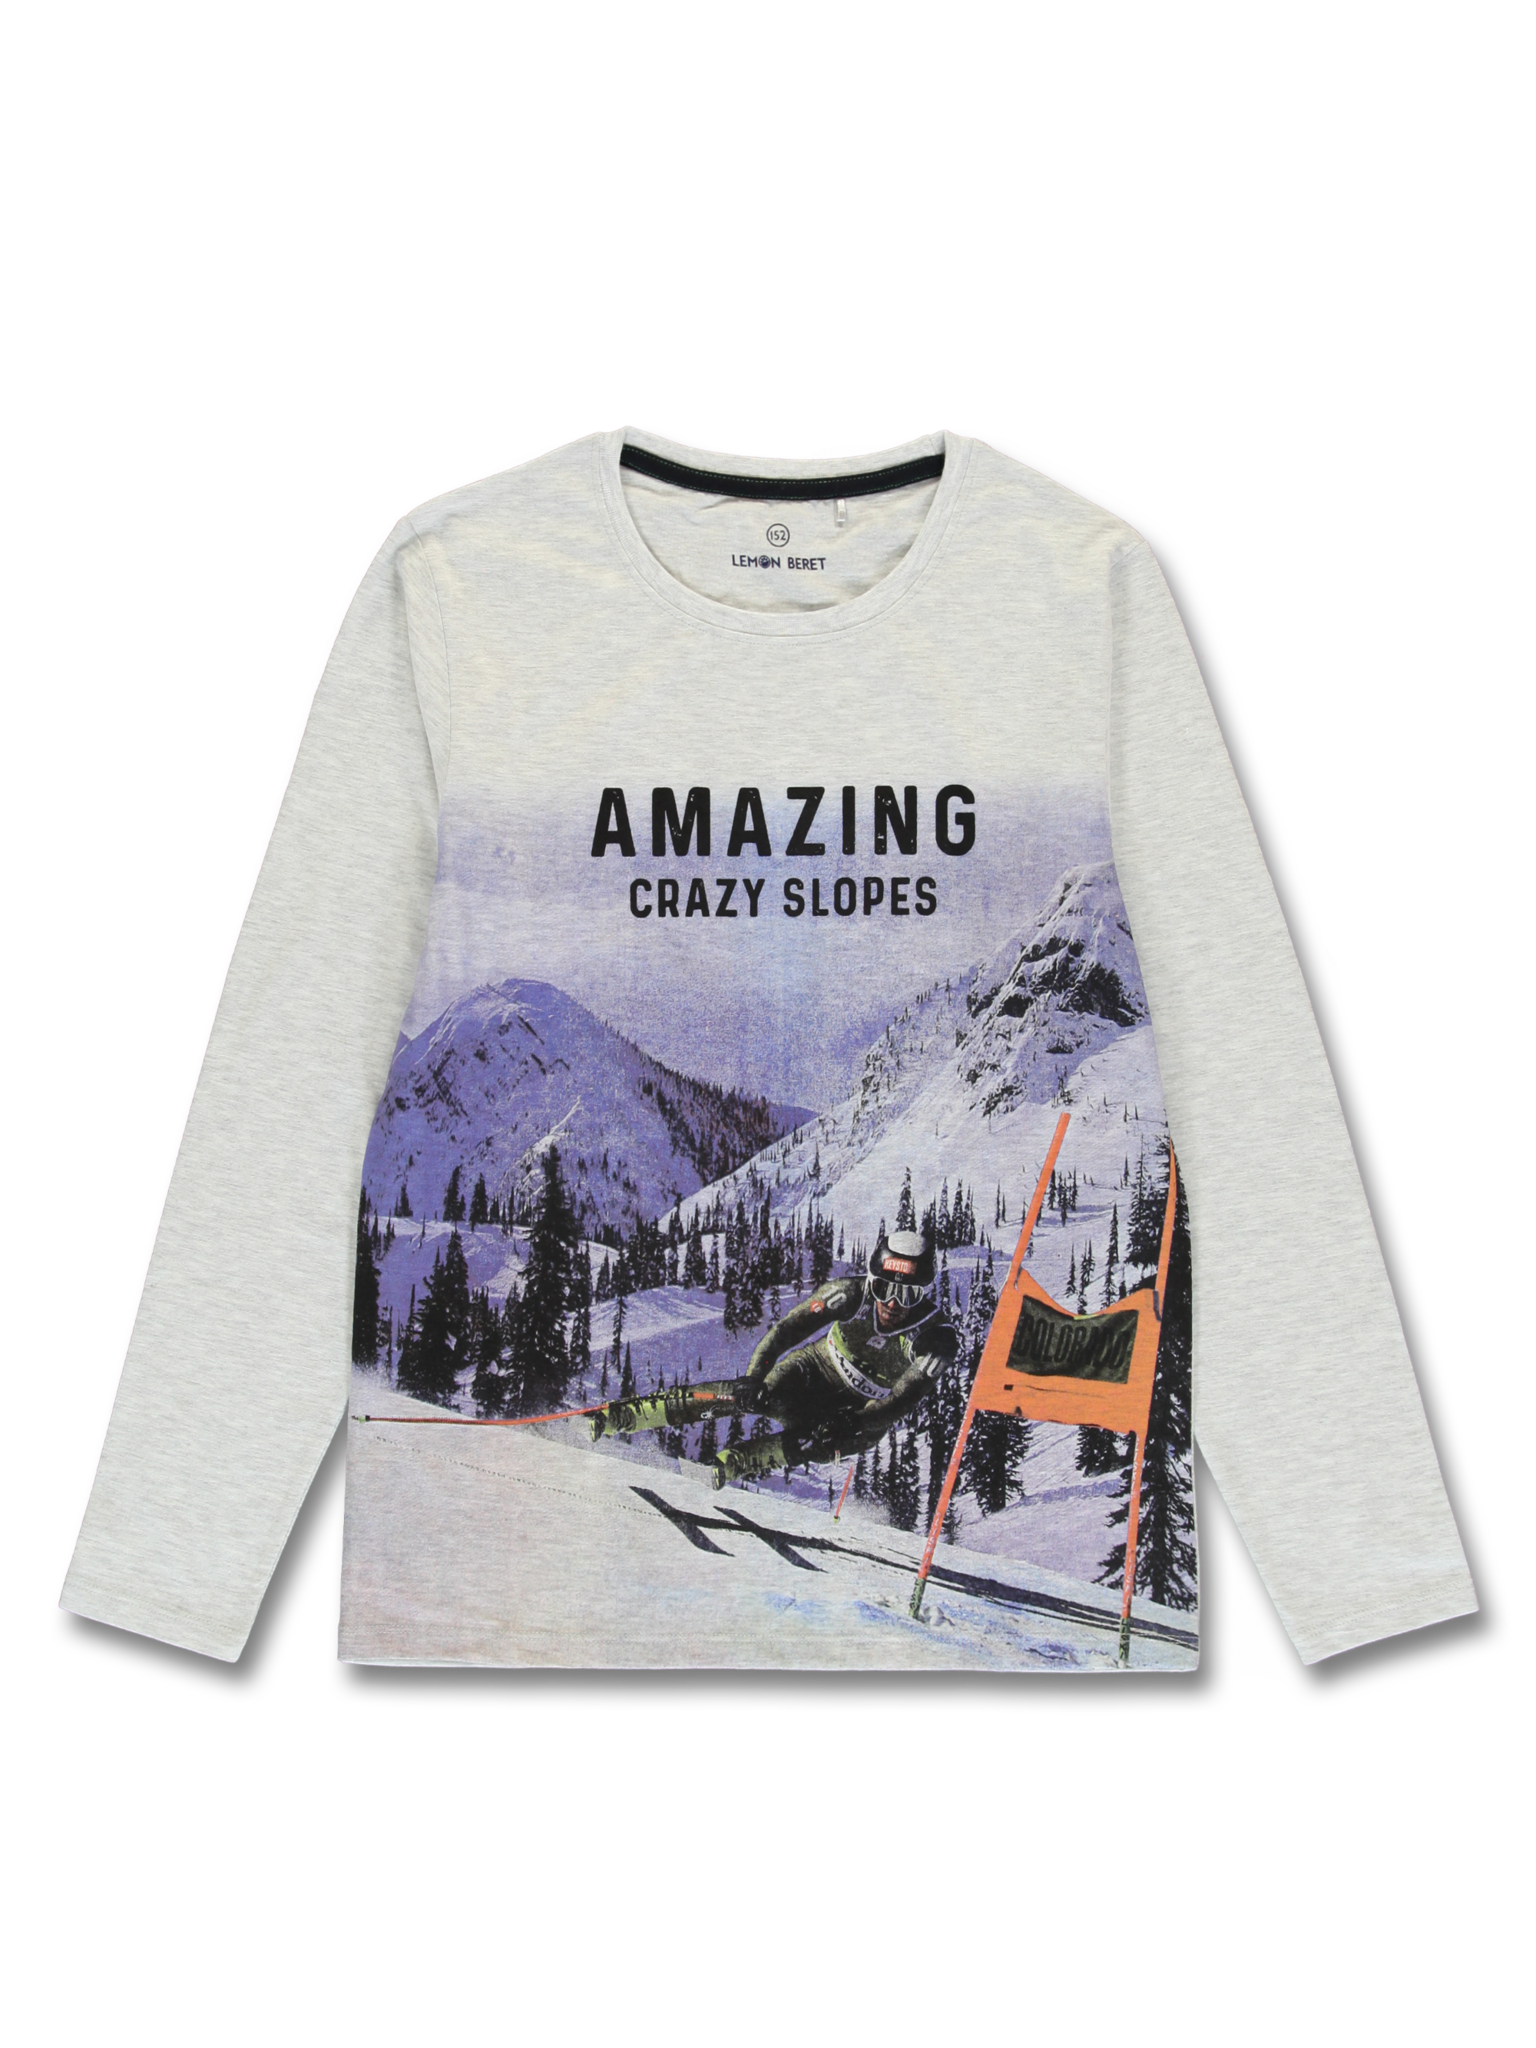 All Brands | Winterproducts Teen Boys | T-shirt | 12 pcs/box